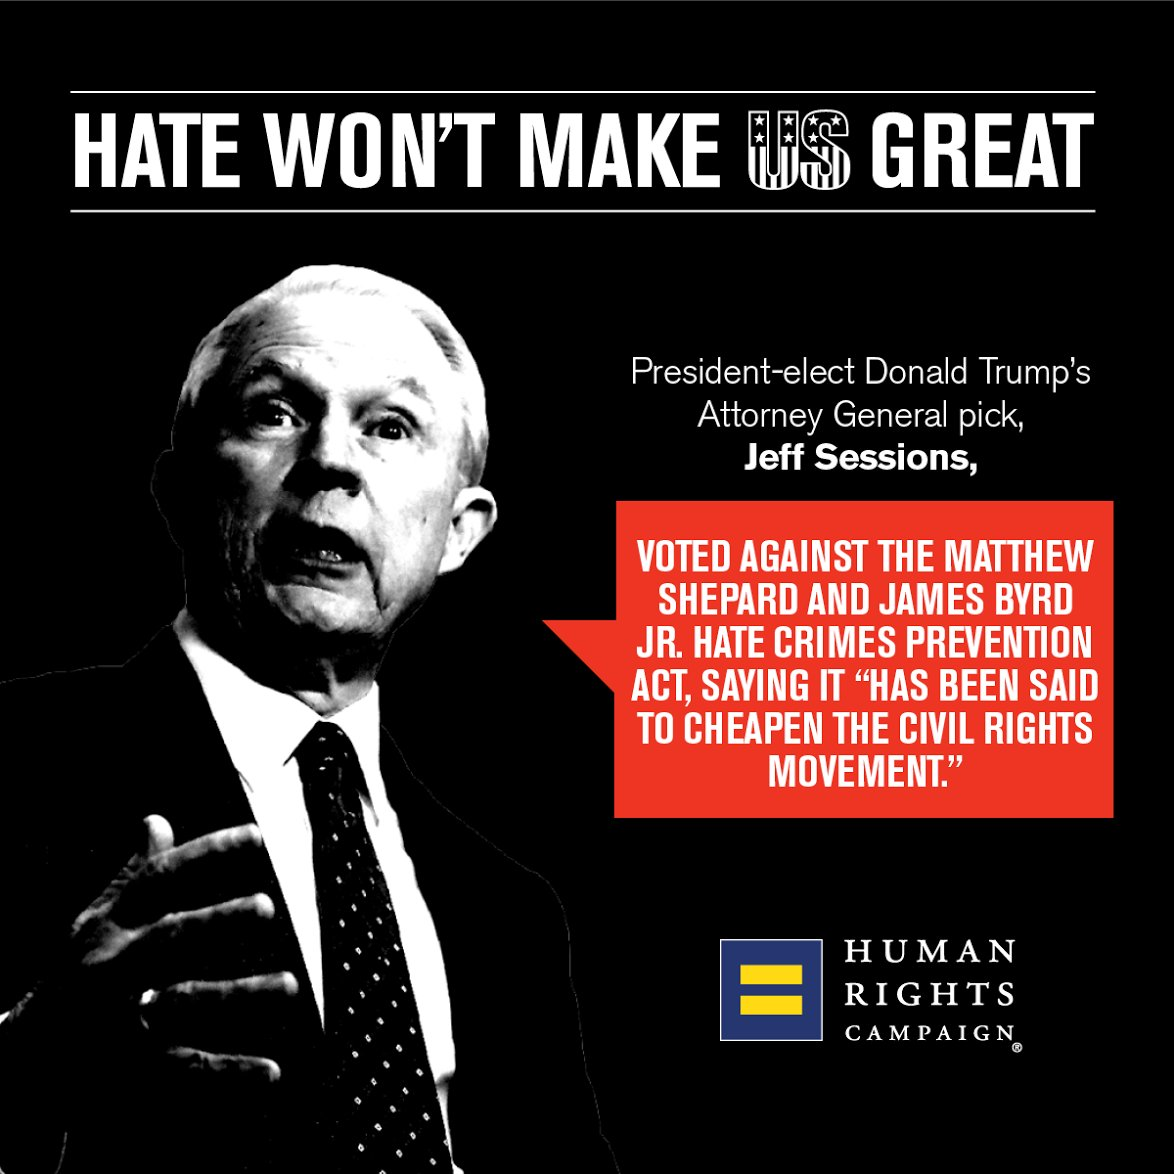 the hate crimes prevention act will not prevent hate crimes Analyzing hate crimes statistics in november 2013, the fbi released the hate crime statistics,  jr hate crimes prevention act (hcpa) students will also explore possible actions they can take to prevent hate crimes.